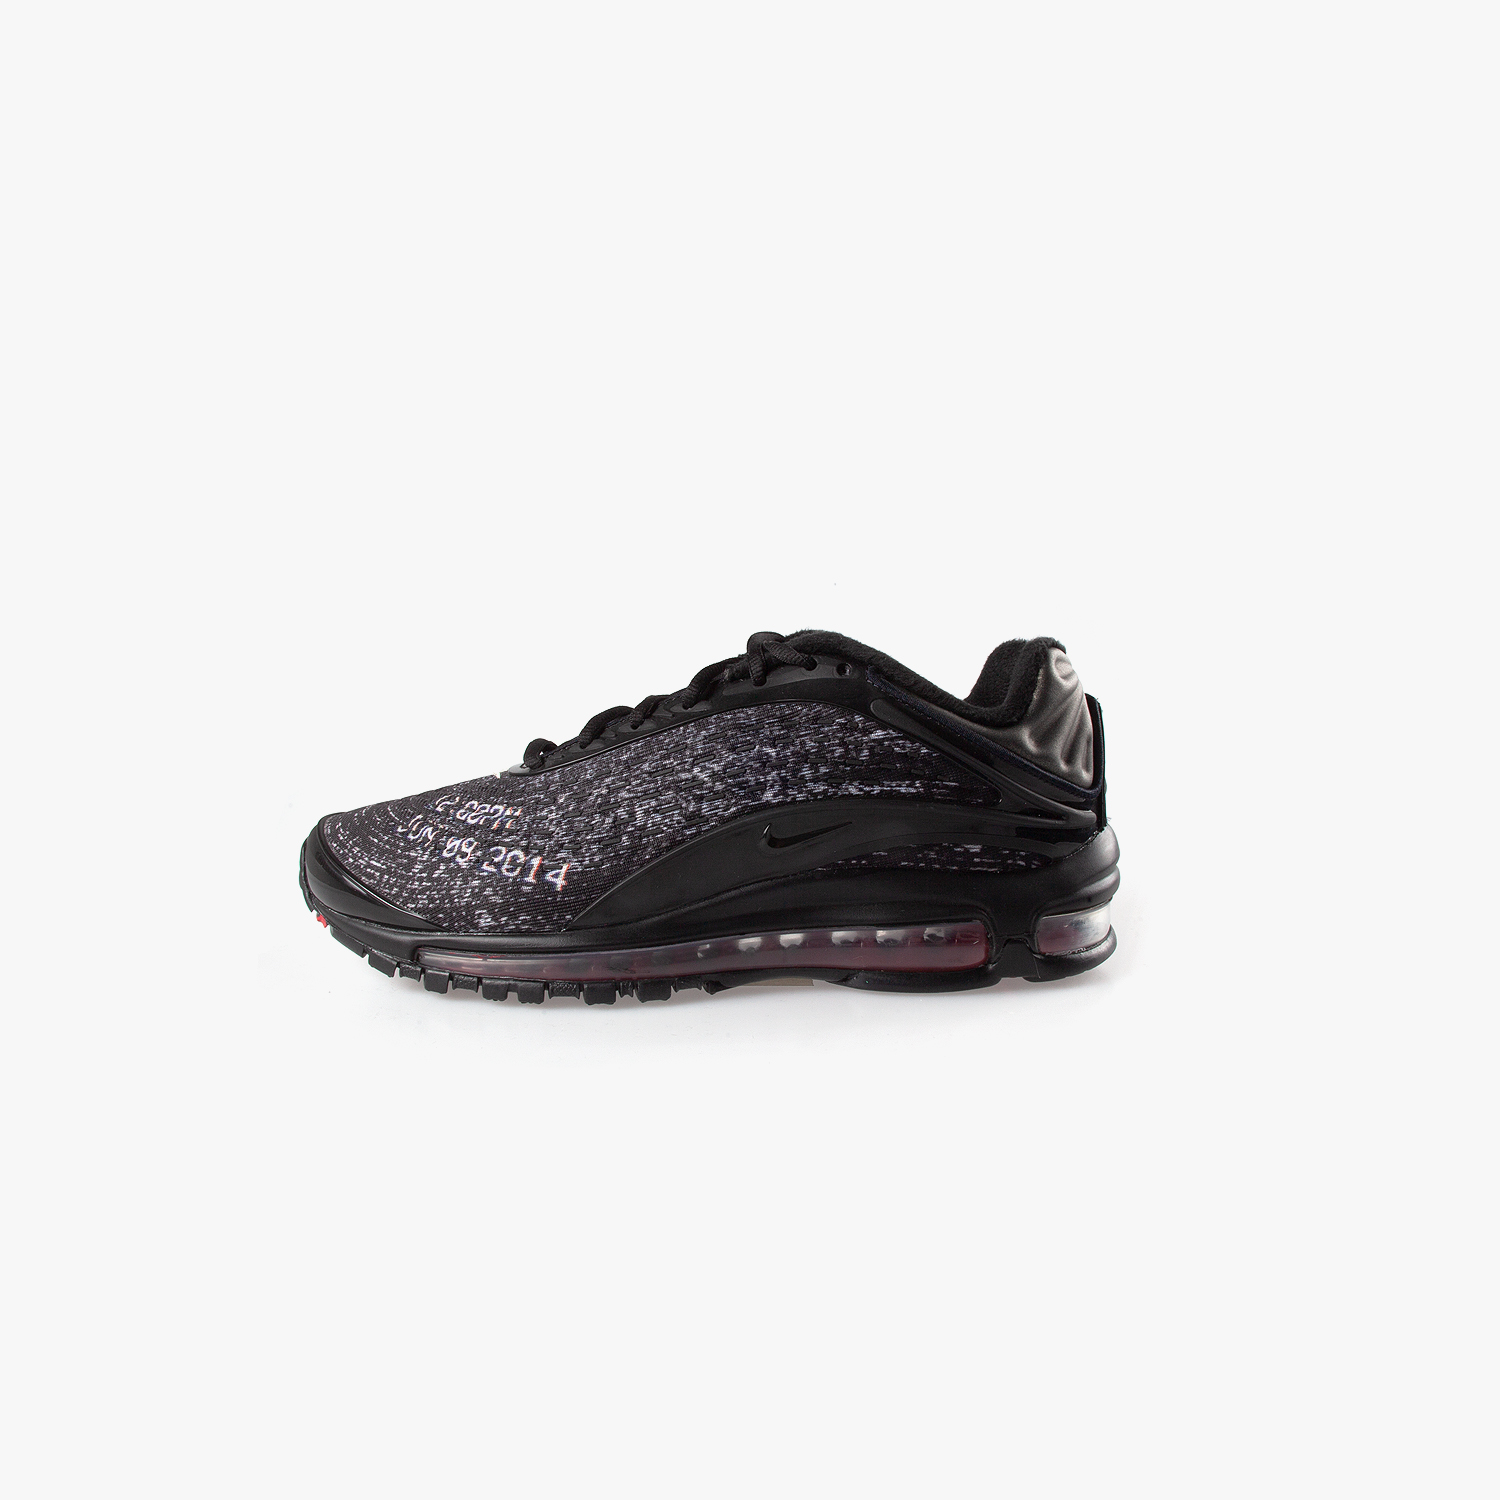 air max 97 skepta stockx nz|Free delivery!